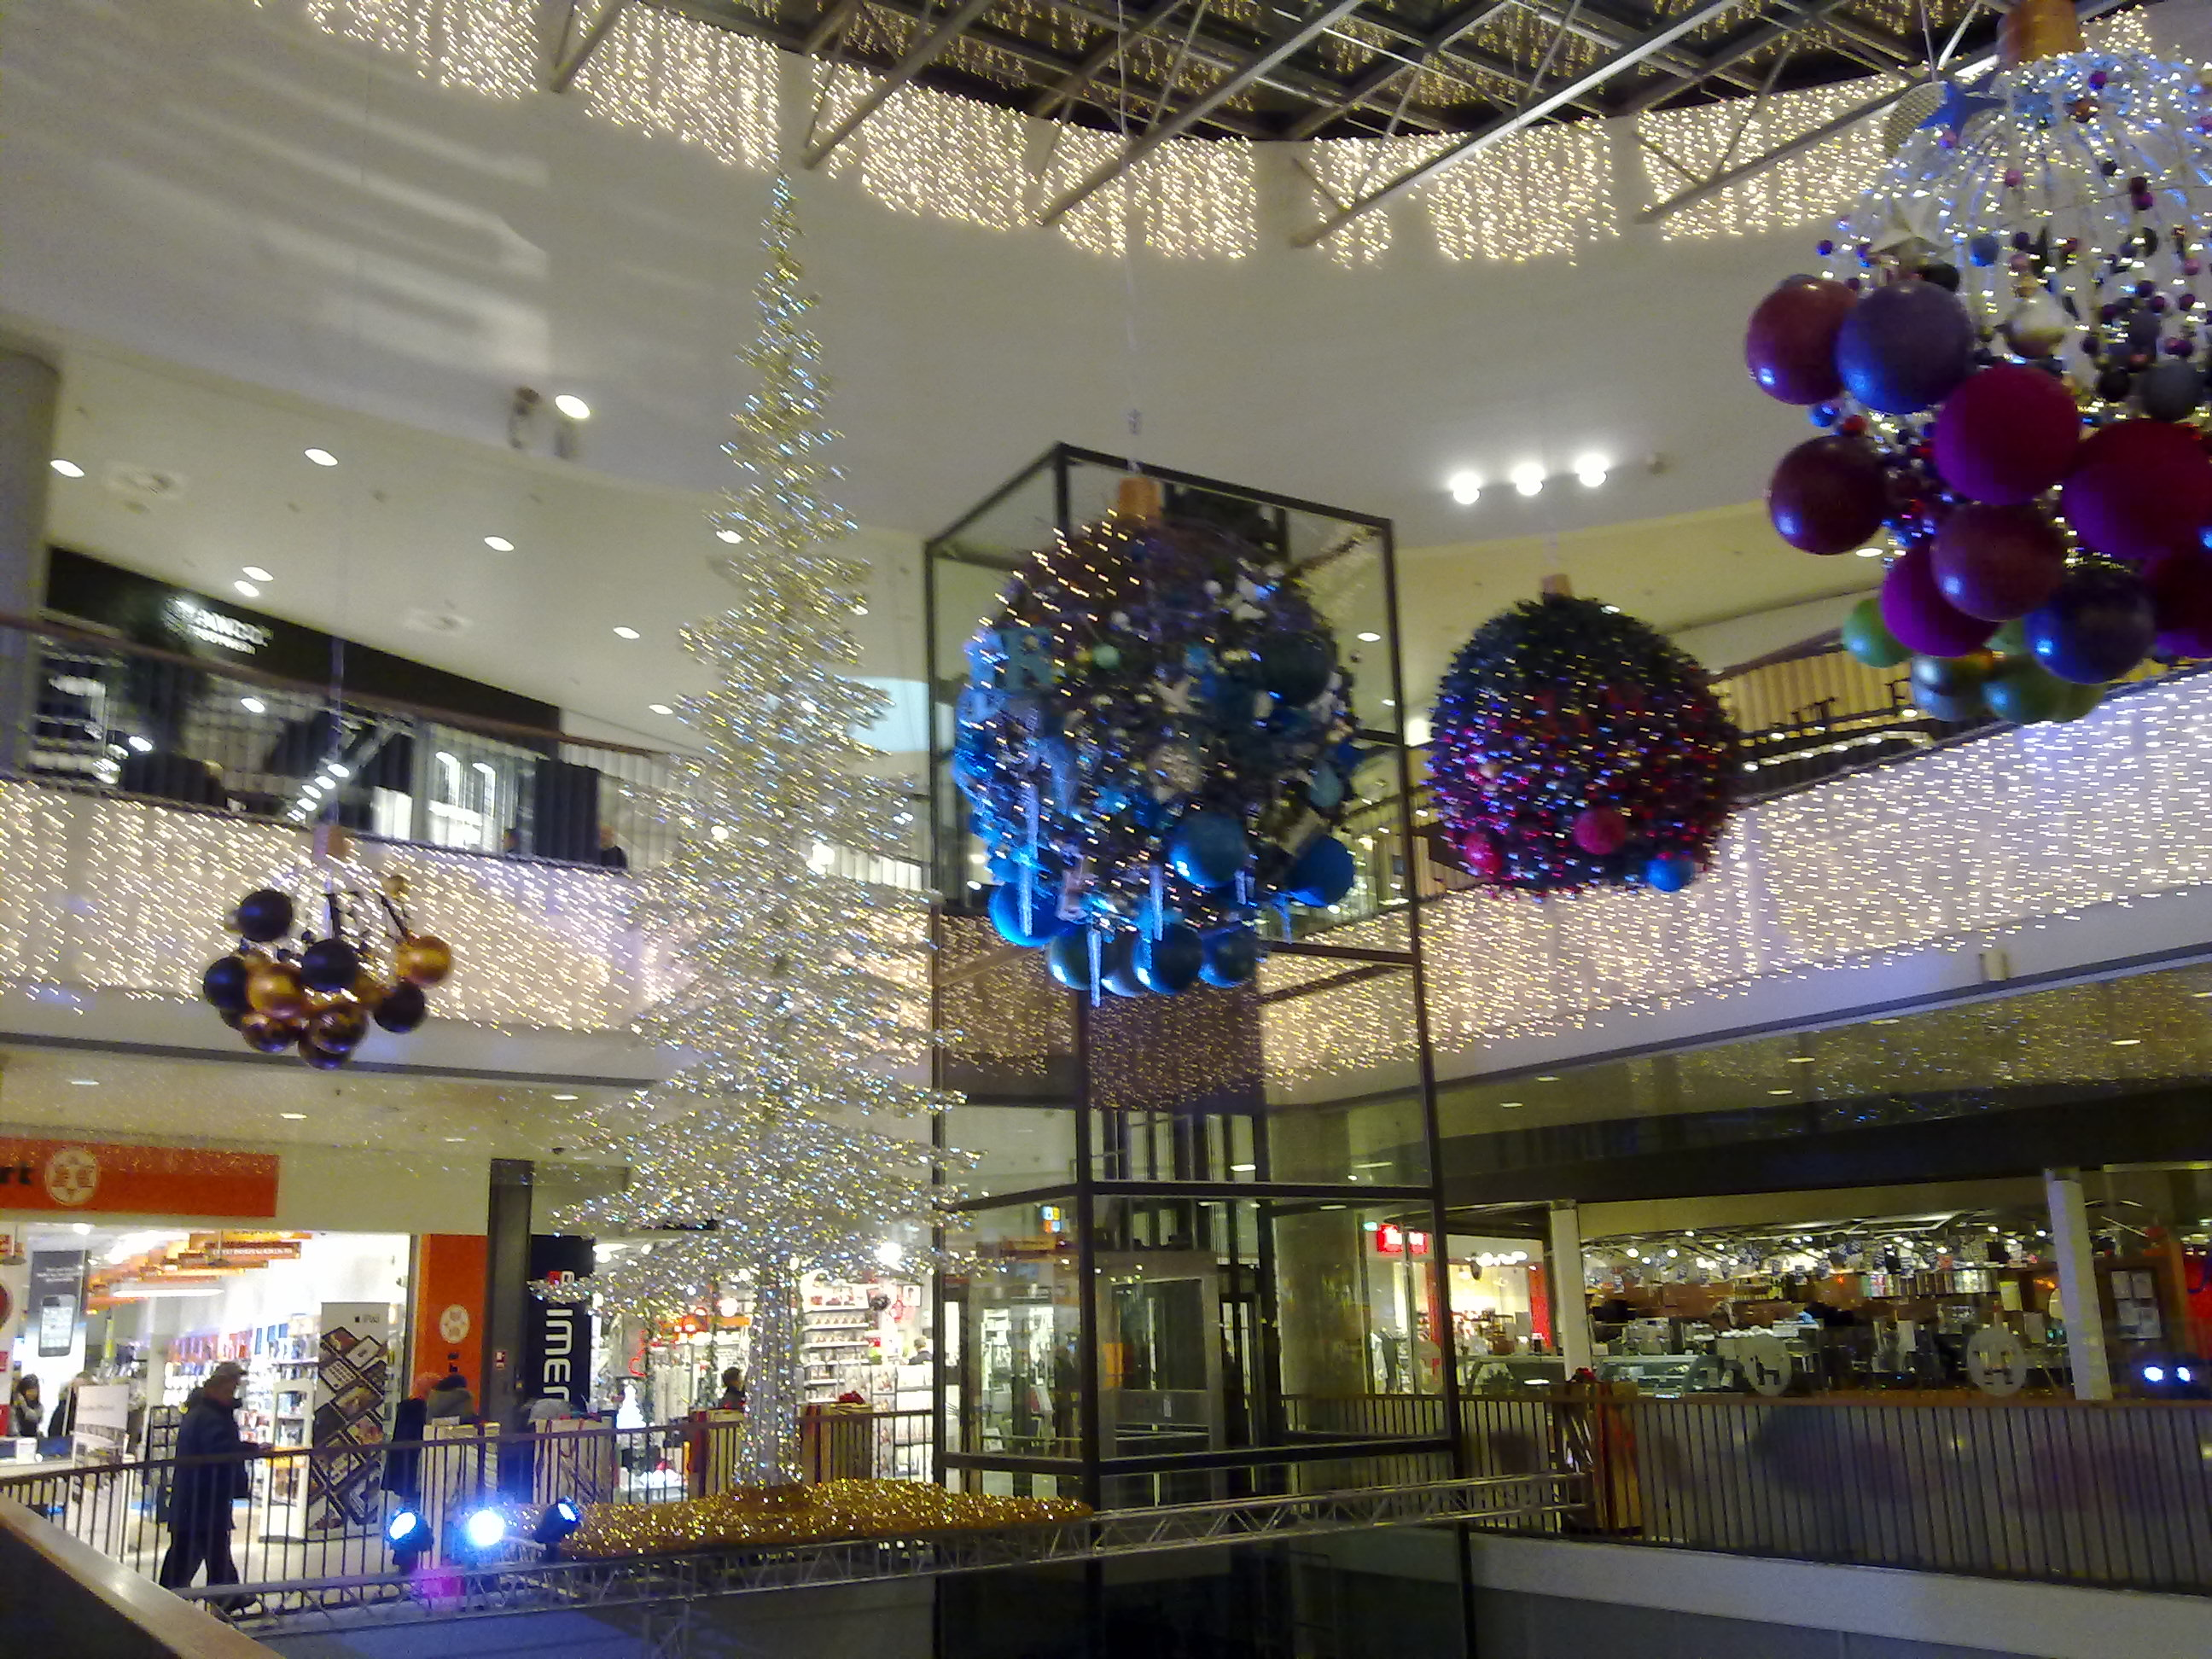 Christmas in aarhus denmark northern blog o sphere for Retail christmas decorations ideas